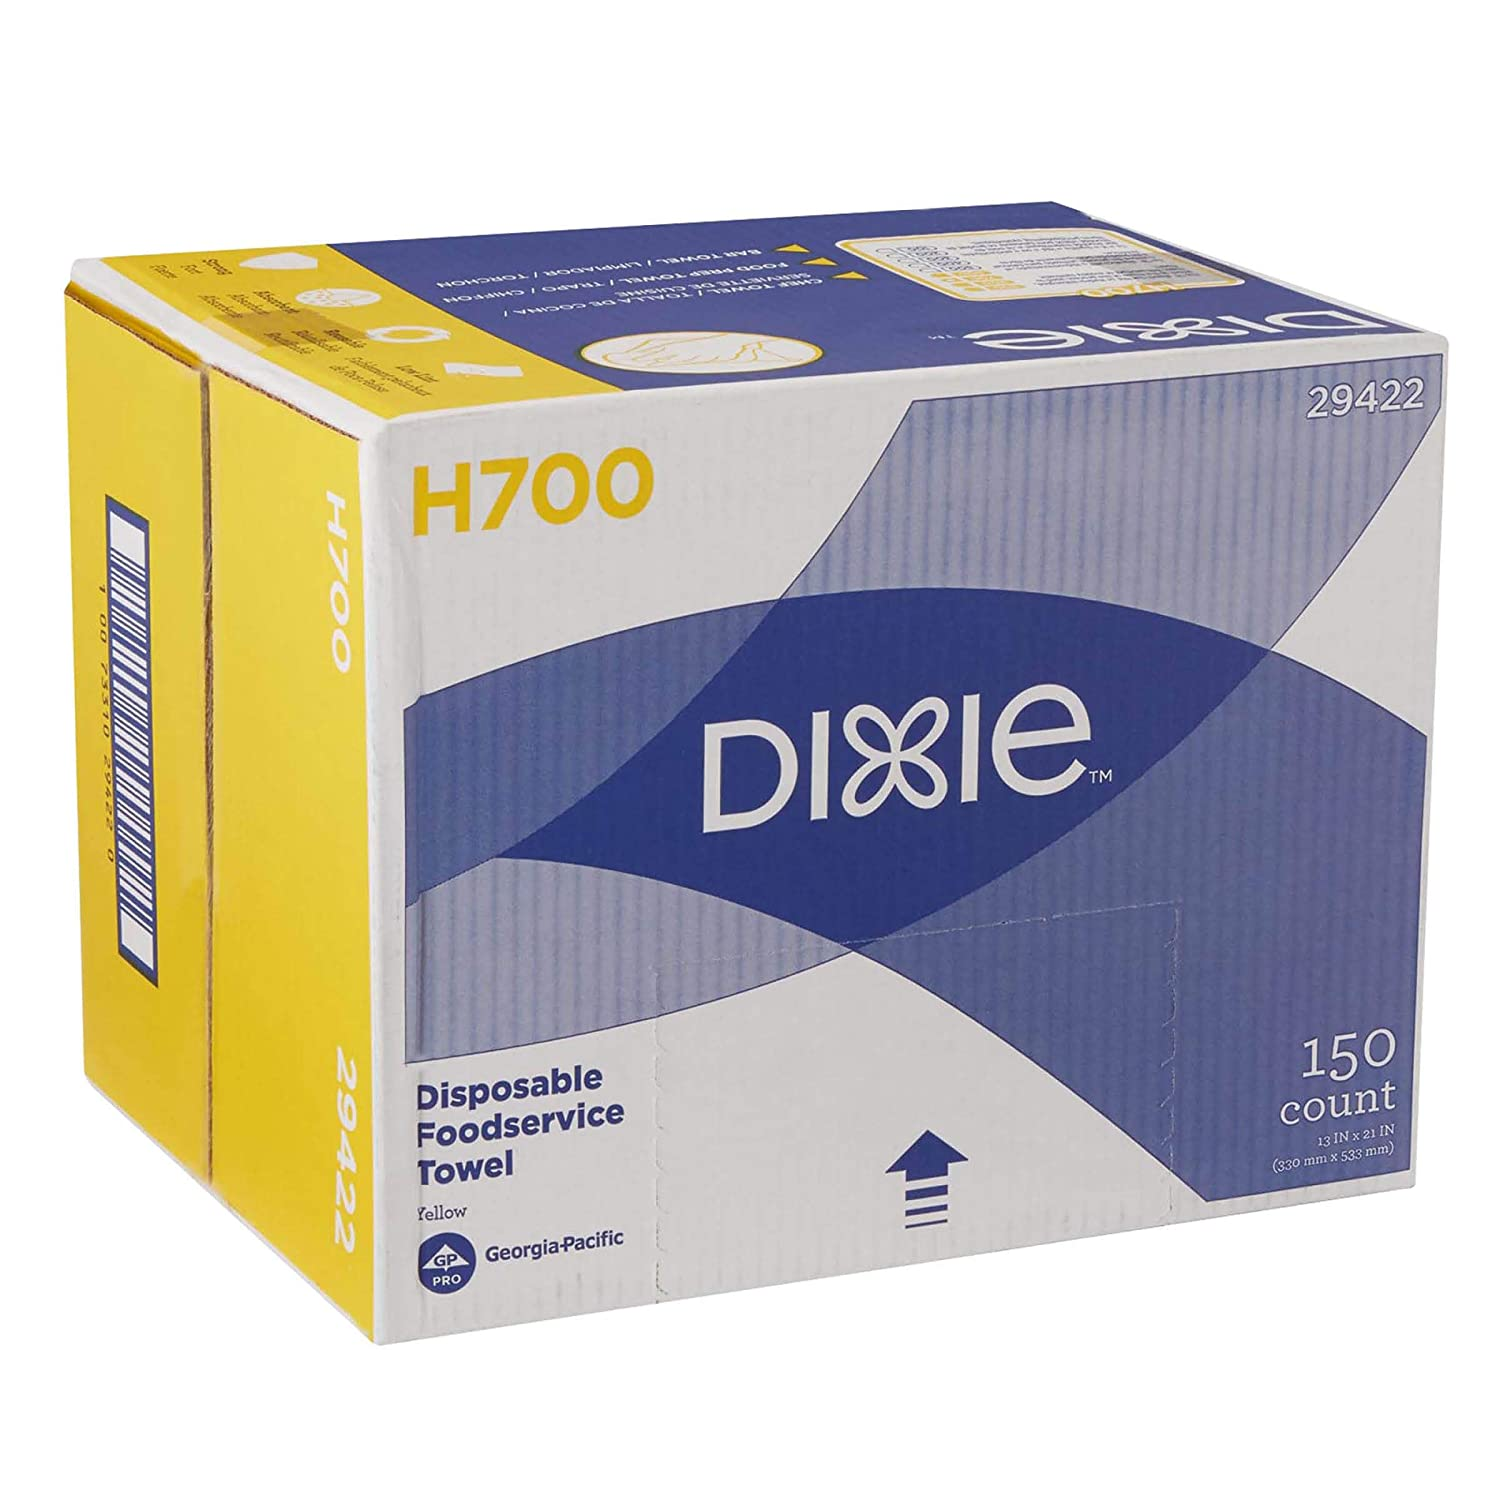 """Dixie H700 Disposable Foodservice Towel by GP PRO (Georgia-Pacific), 29422, Yellow, 150 Towels Per Case, Towel (WxL) 13"""" x 21"""""""